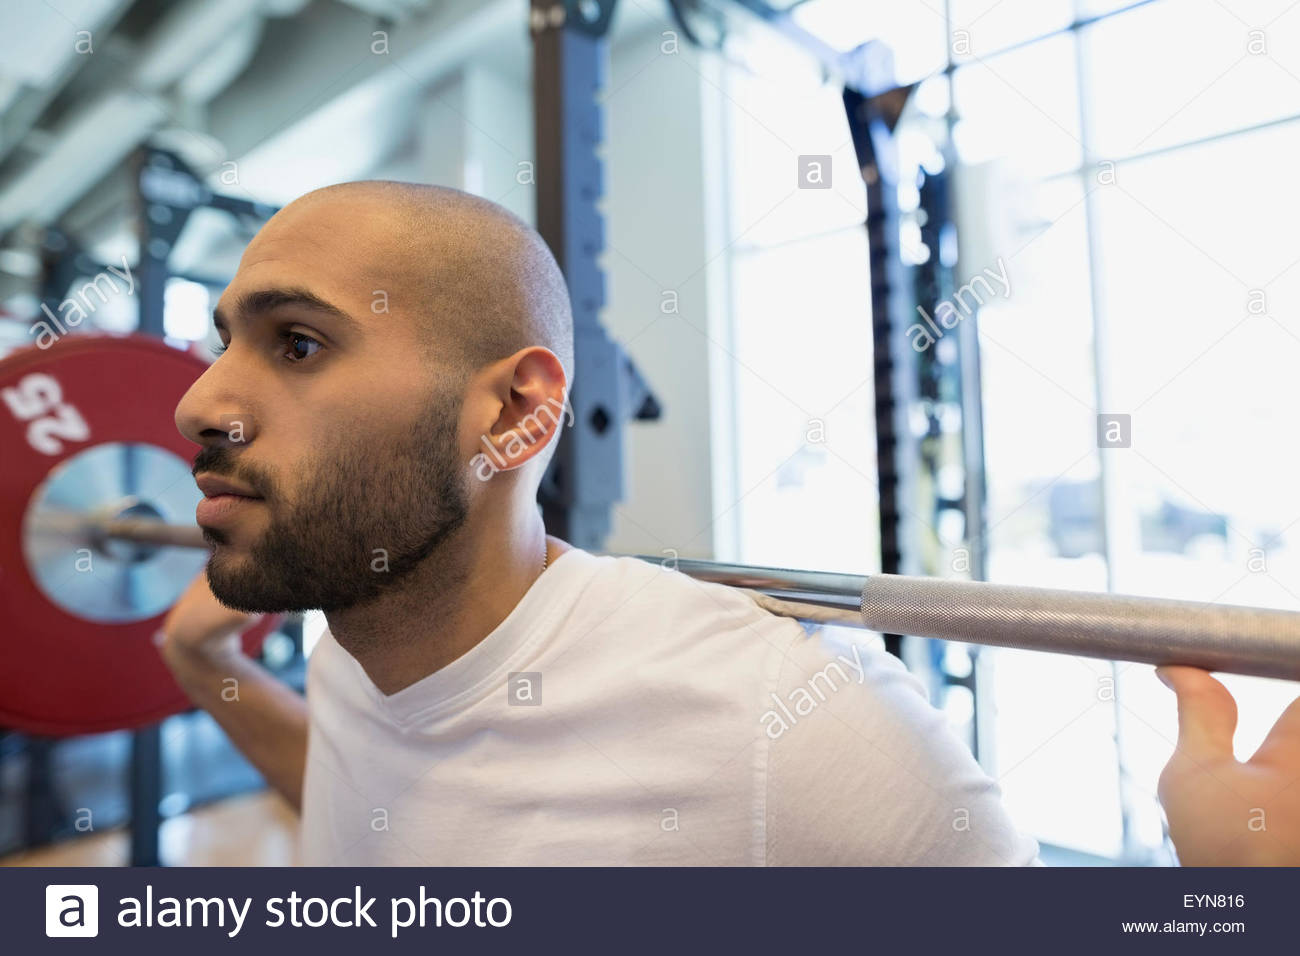 Close up man doing squats barbell at gym Photo Stock